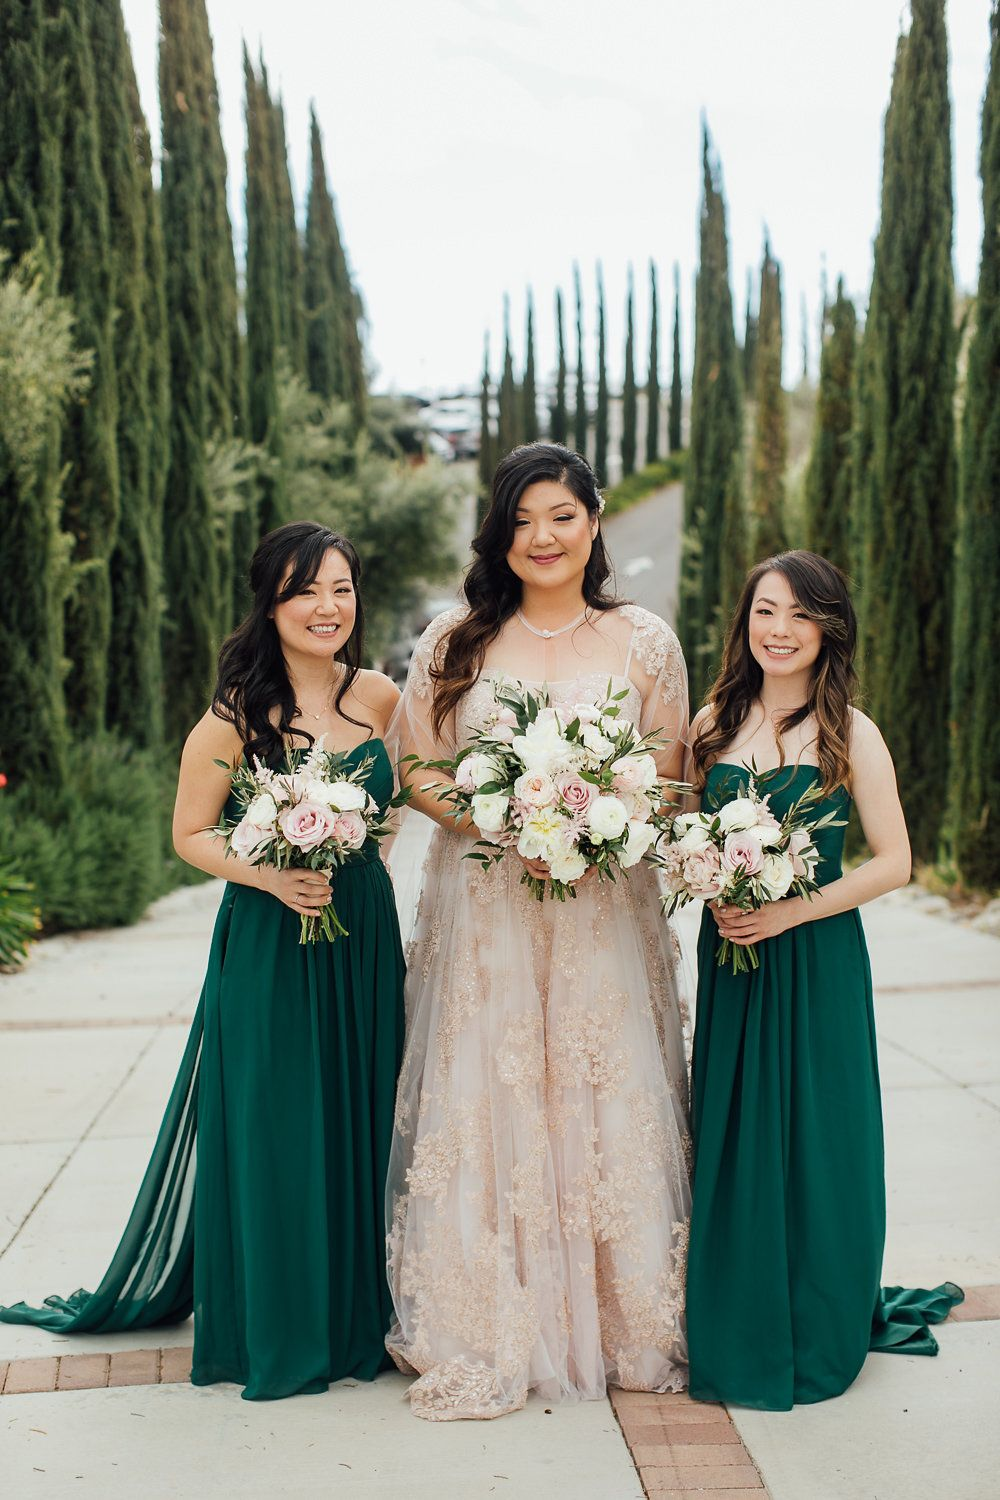 25 Perfete Fall Bridesmaid Dresses That Will Drop Jaws Perfete In 2020 Fall Bridesmaid Dresses Emerald Green Bridesmaid Dresses Green Bridesmaid Dresses